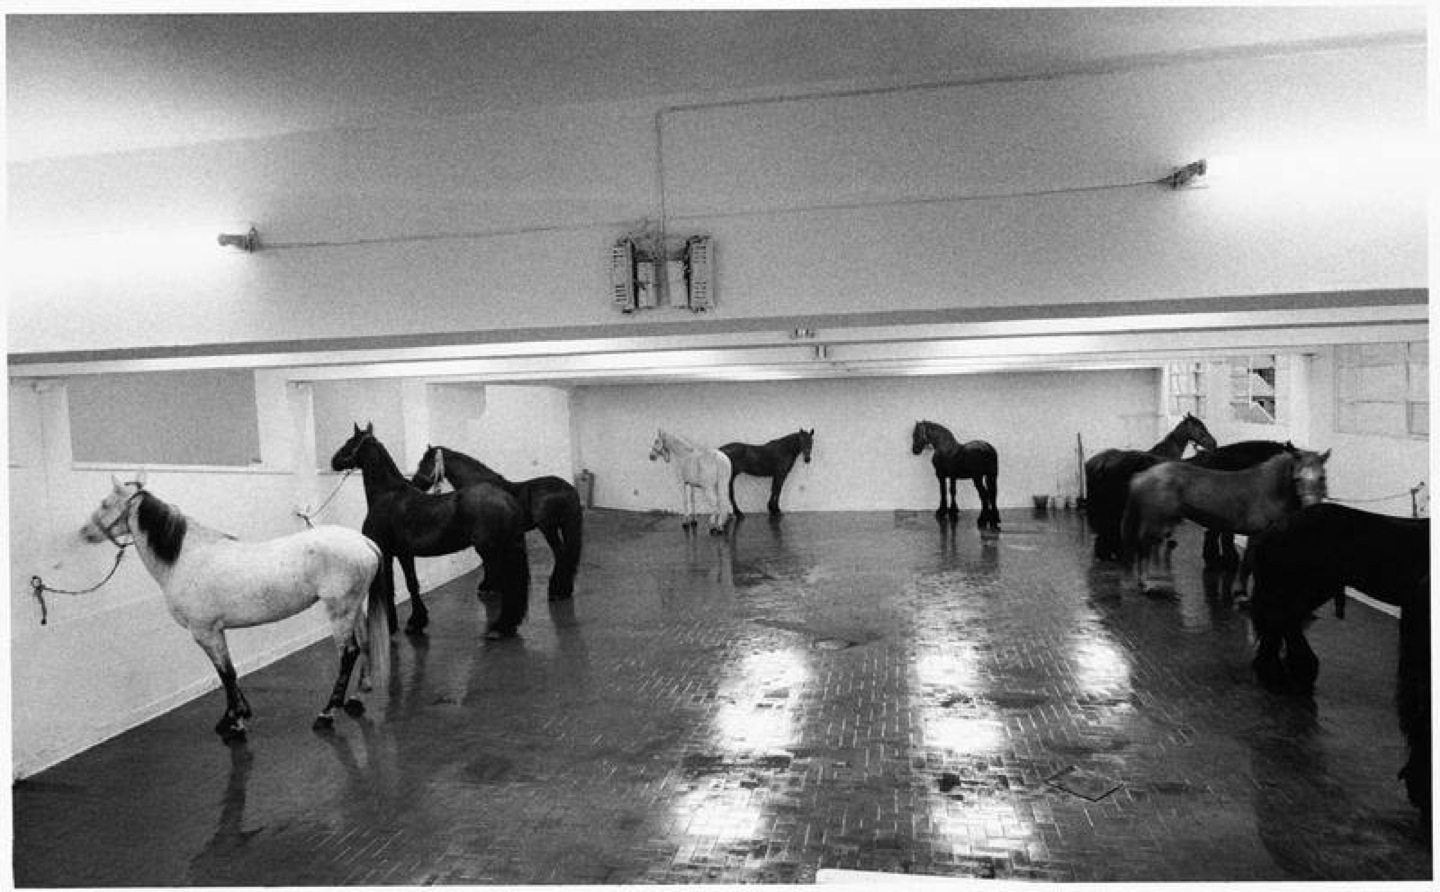 Untitled (12 horses), (1969) by Jannis Kounellis at the L'Attico Gallery, Rome